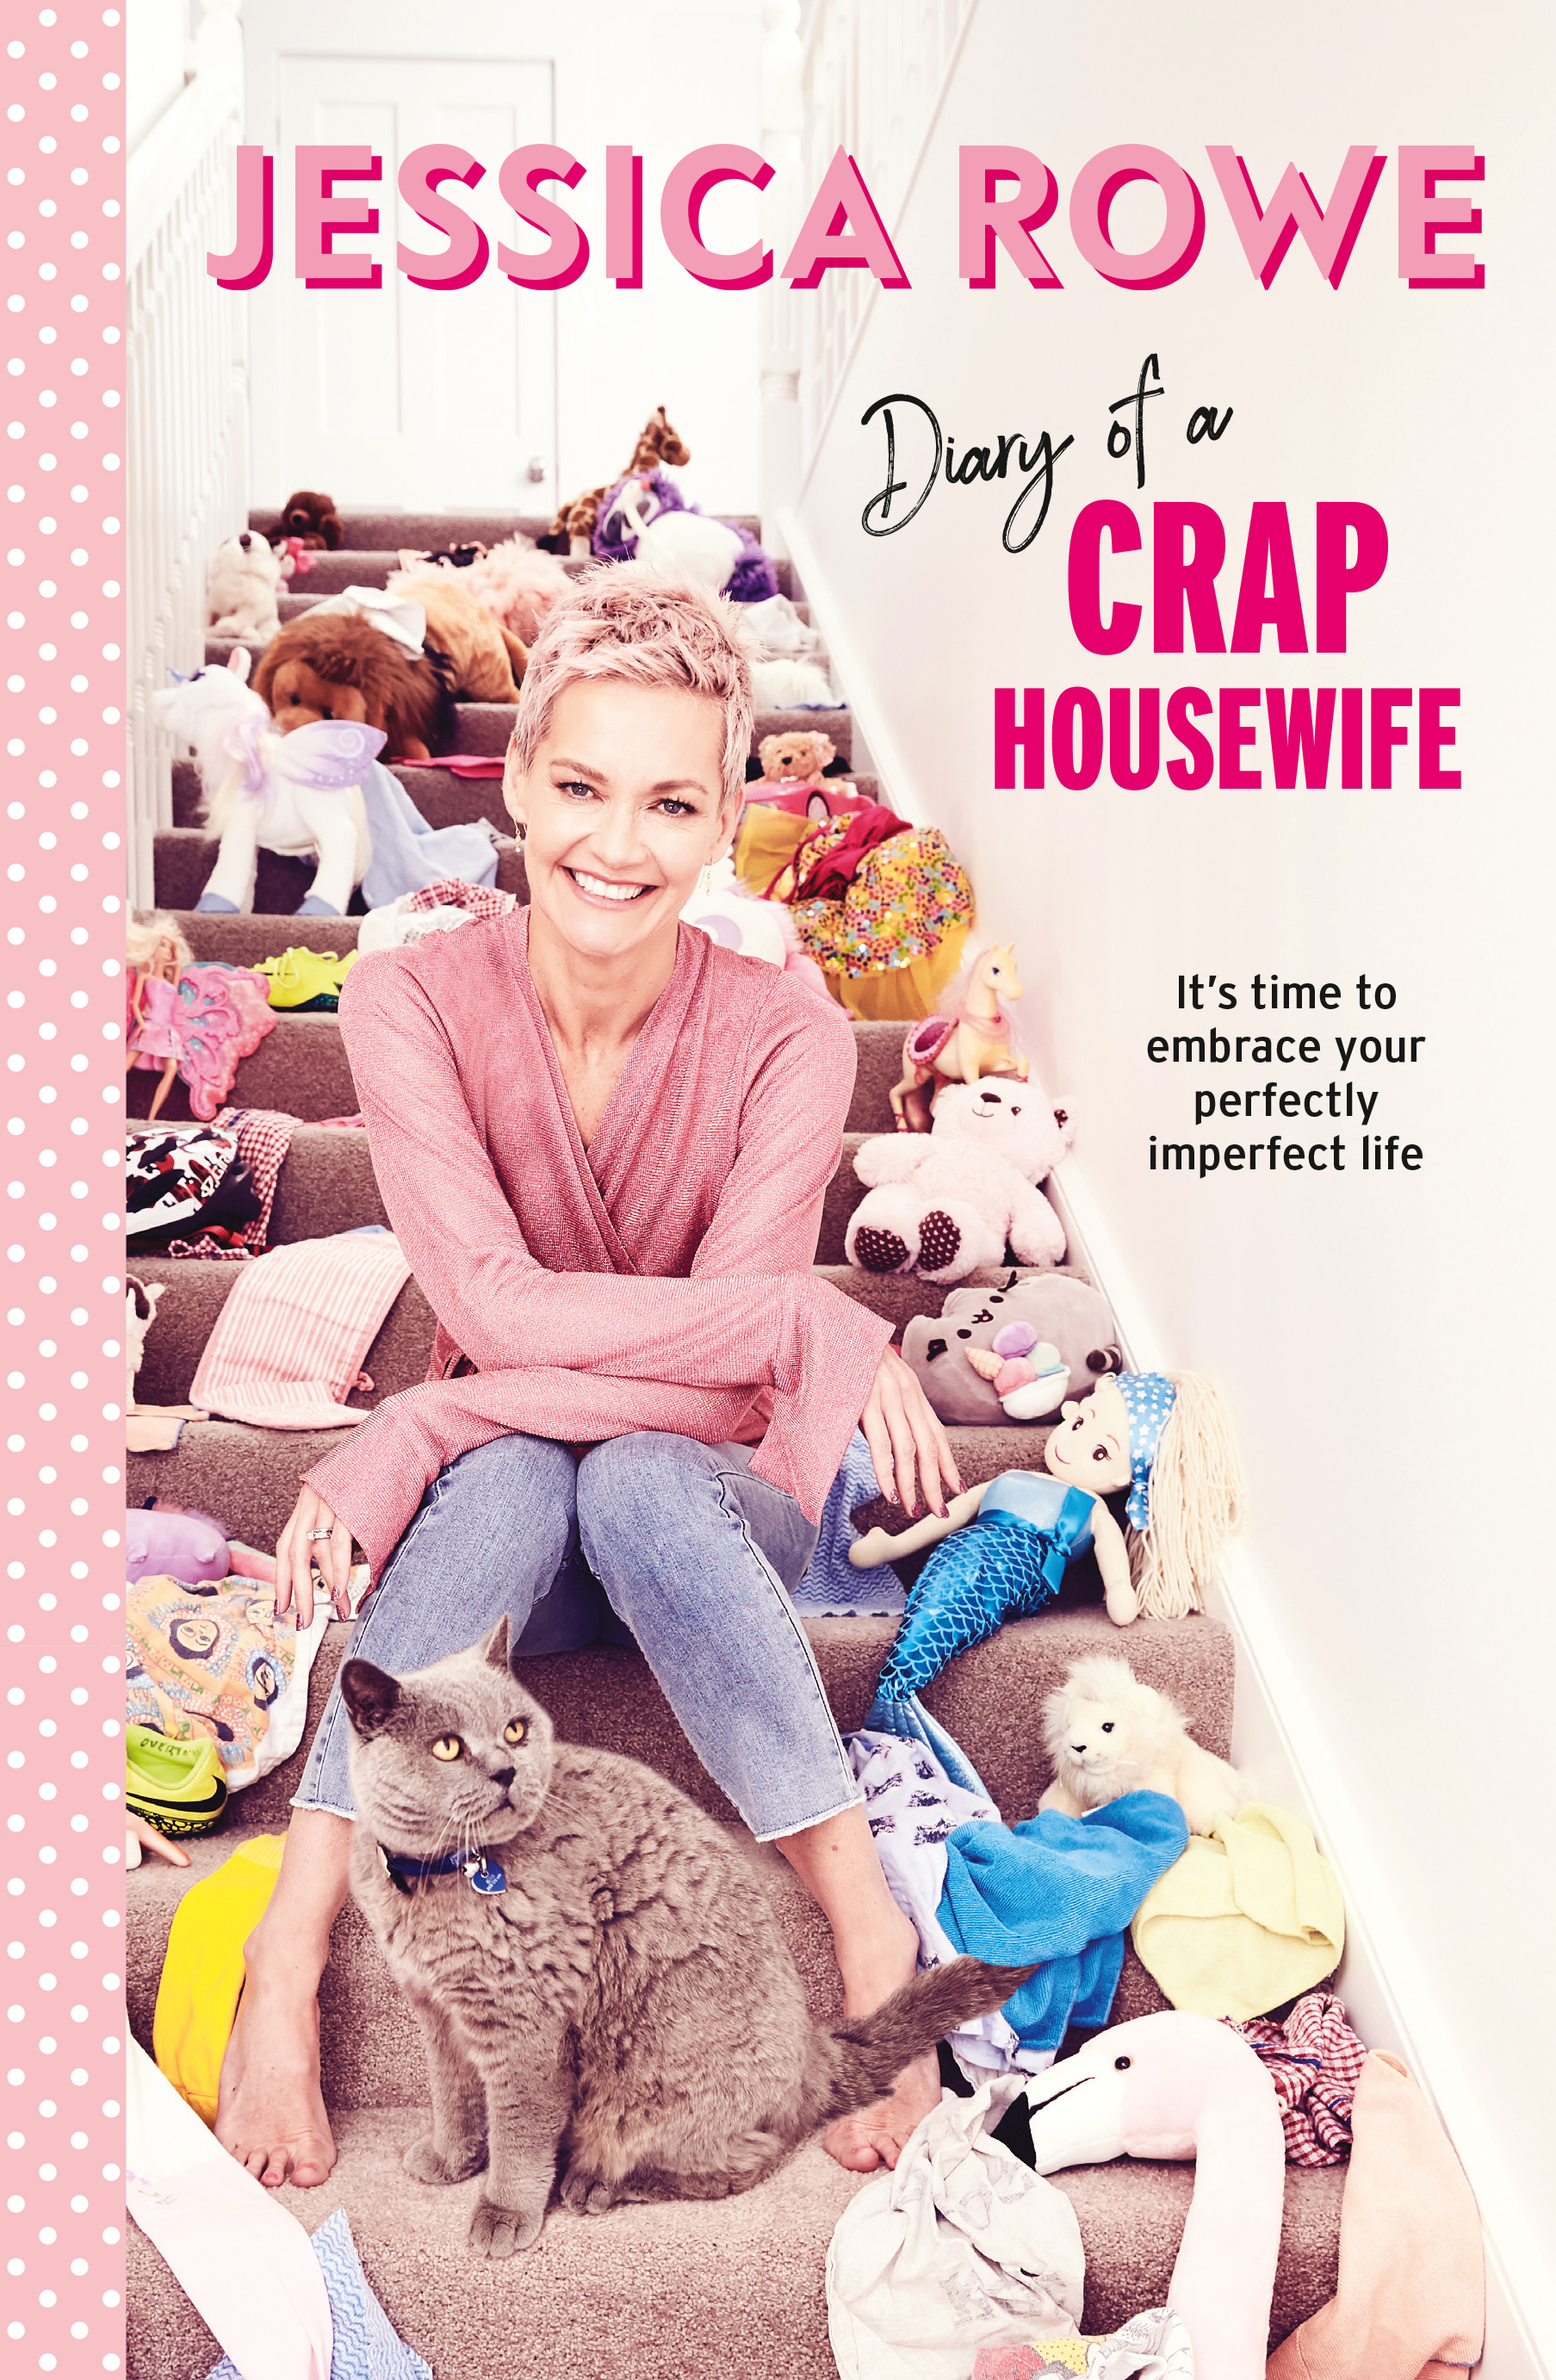 Diary of a Crap Housewife - It's time to embrace your perfectly imperfect life.